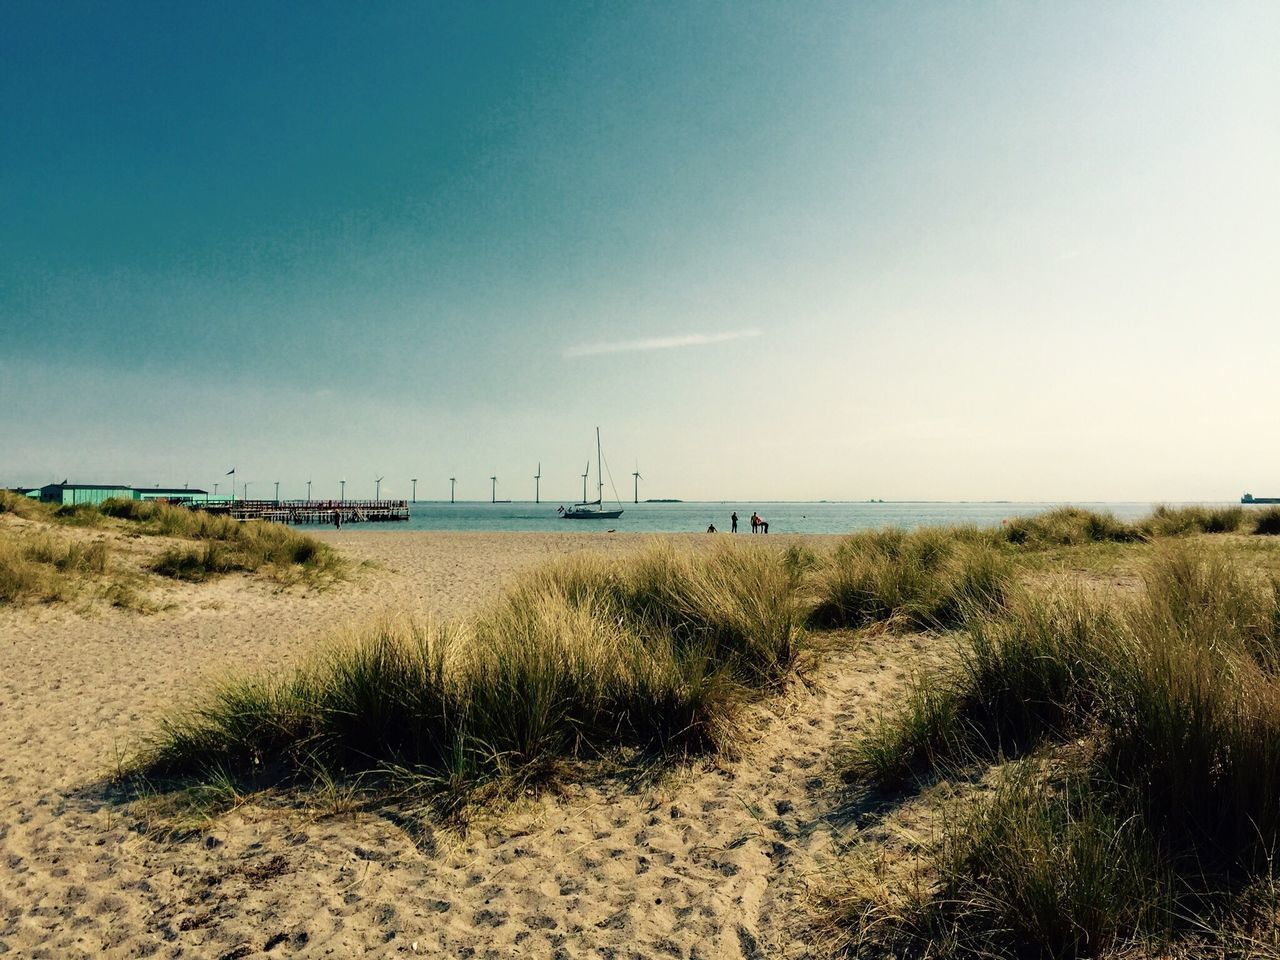 Copenhagen Grass Nature Beach Sea No People Tranquil Scene Tranquility Sand Outdoors Marram Grass Day Sky Horizon Over Water Water Beauty In Nature Scenics Clear Sky Growth